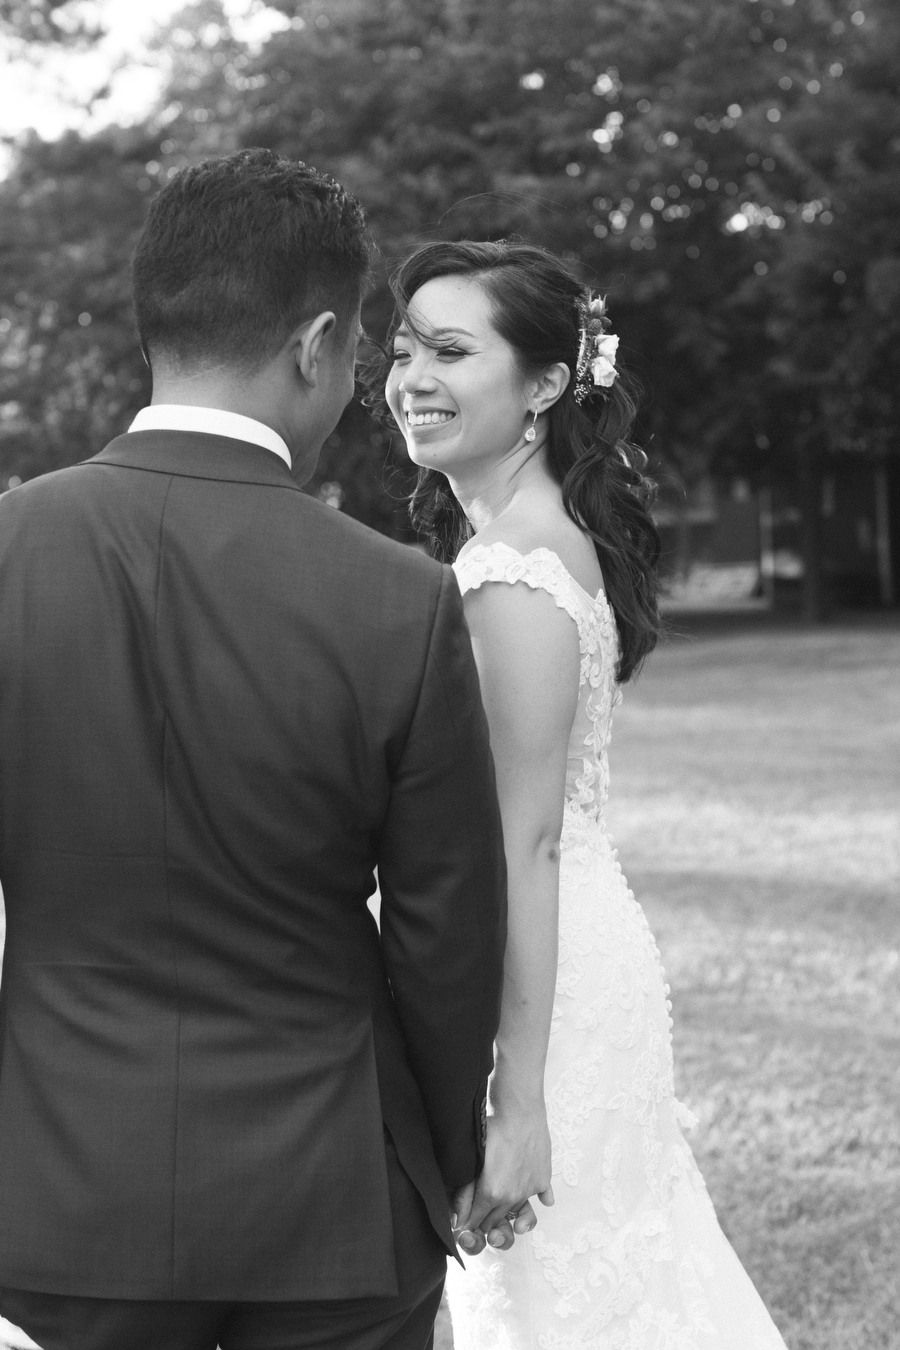 MARIACORONAPHOTOGRAPHY_WEDDING_094.JPG